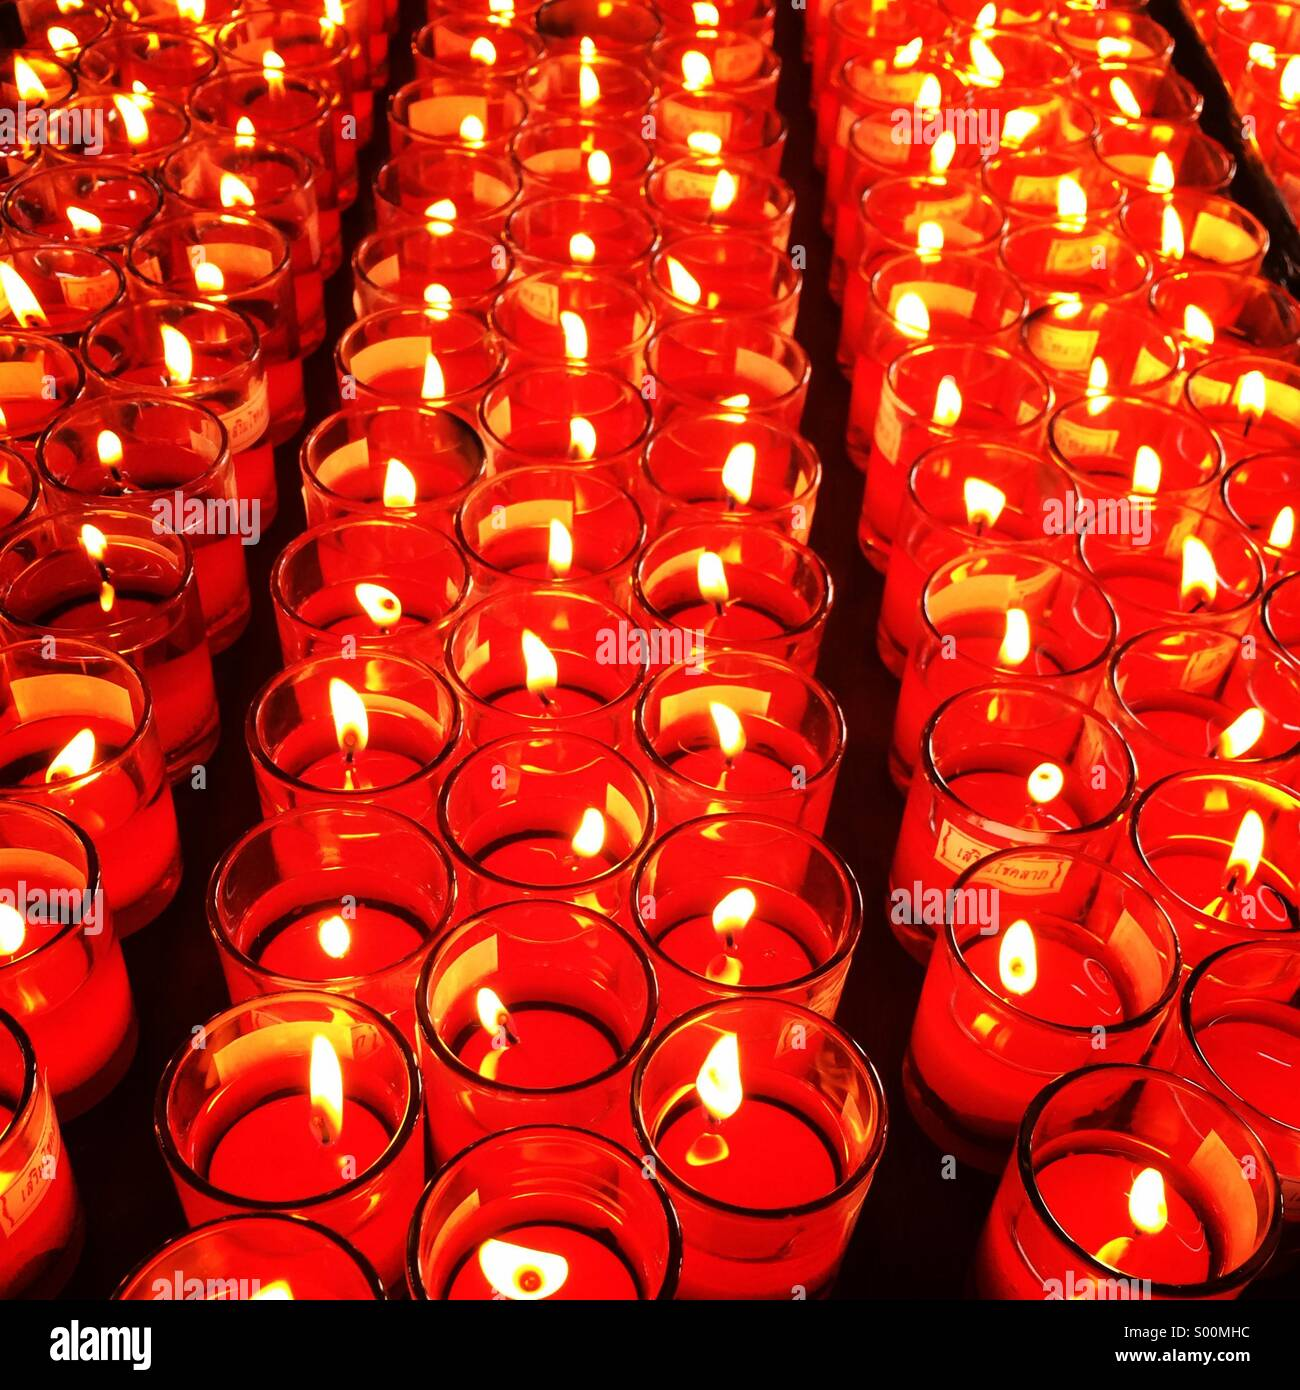 Candle light - Stock Image